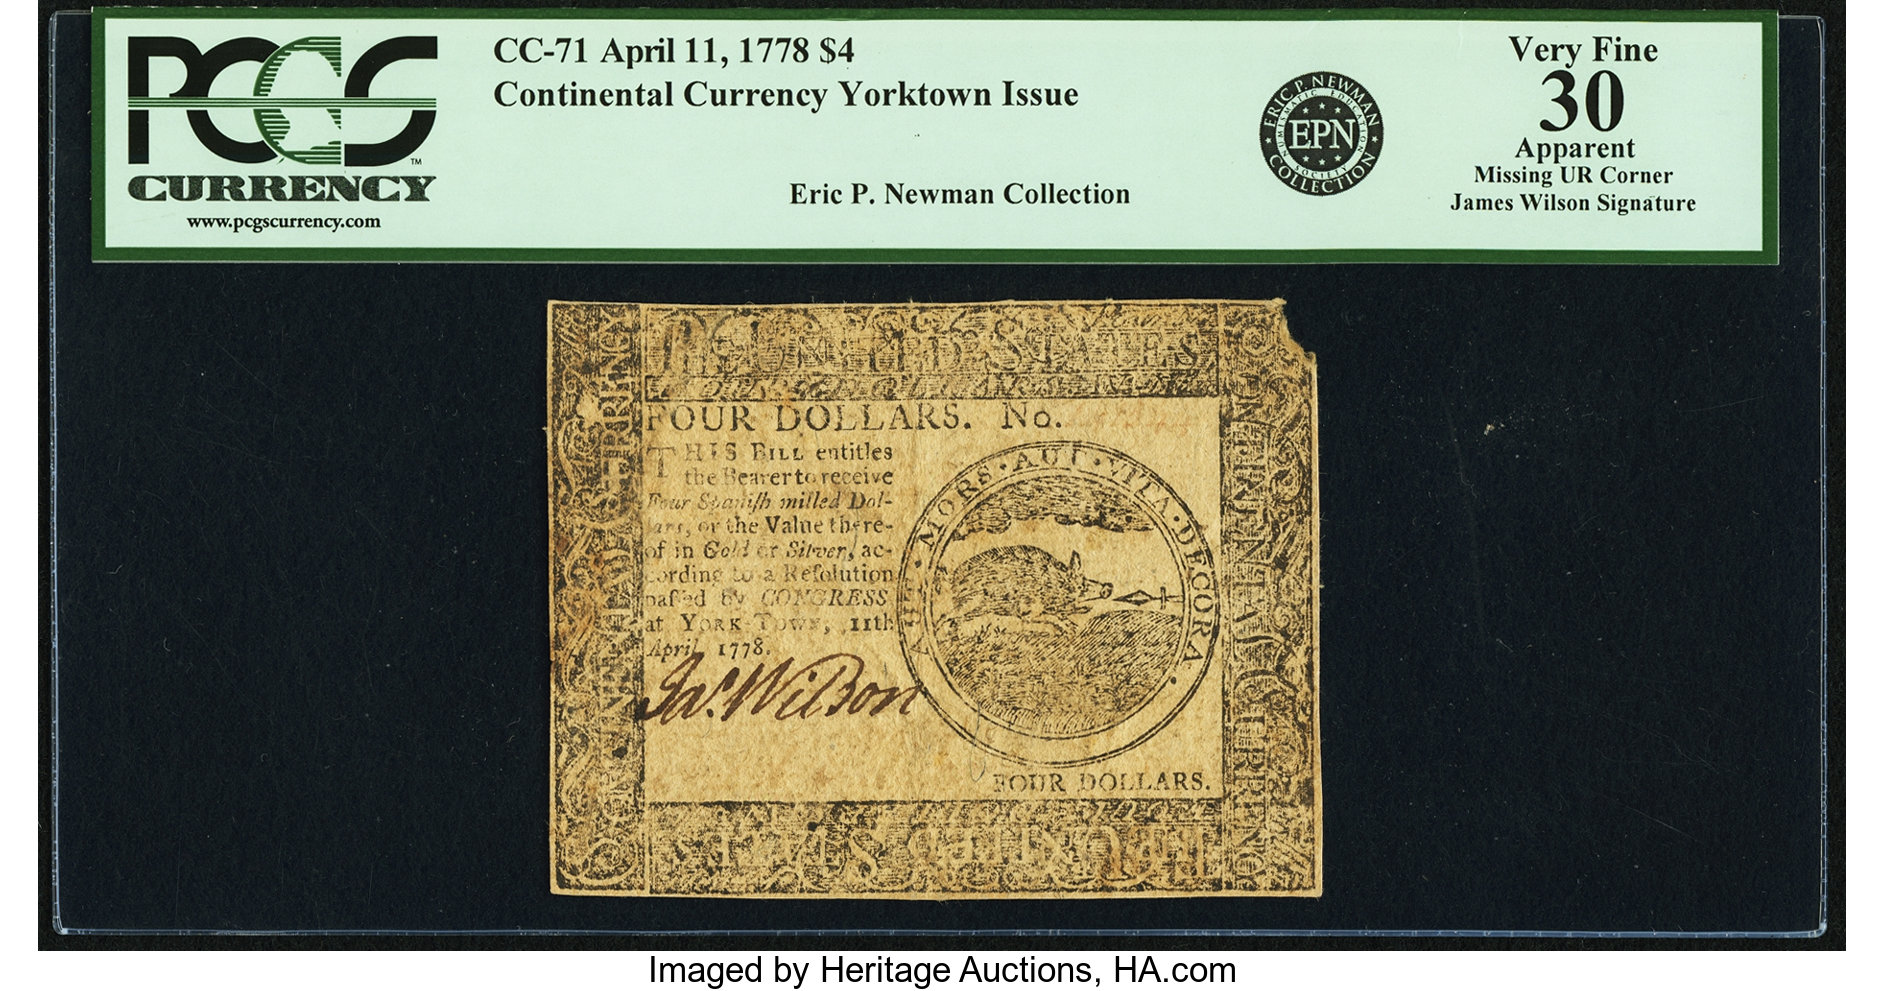 sample image for 1778 $4 CC71 Yorktown